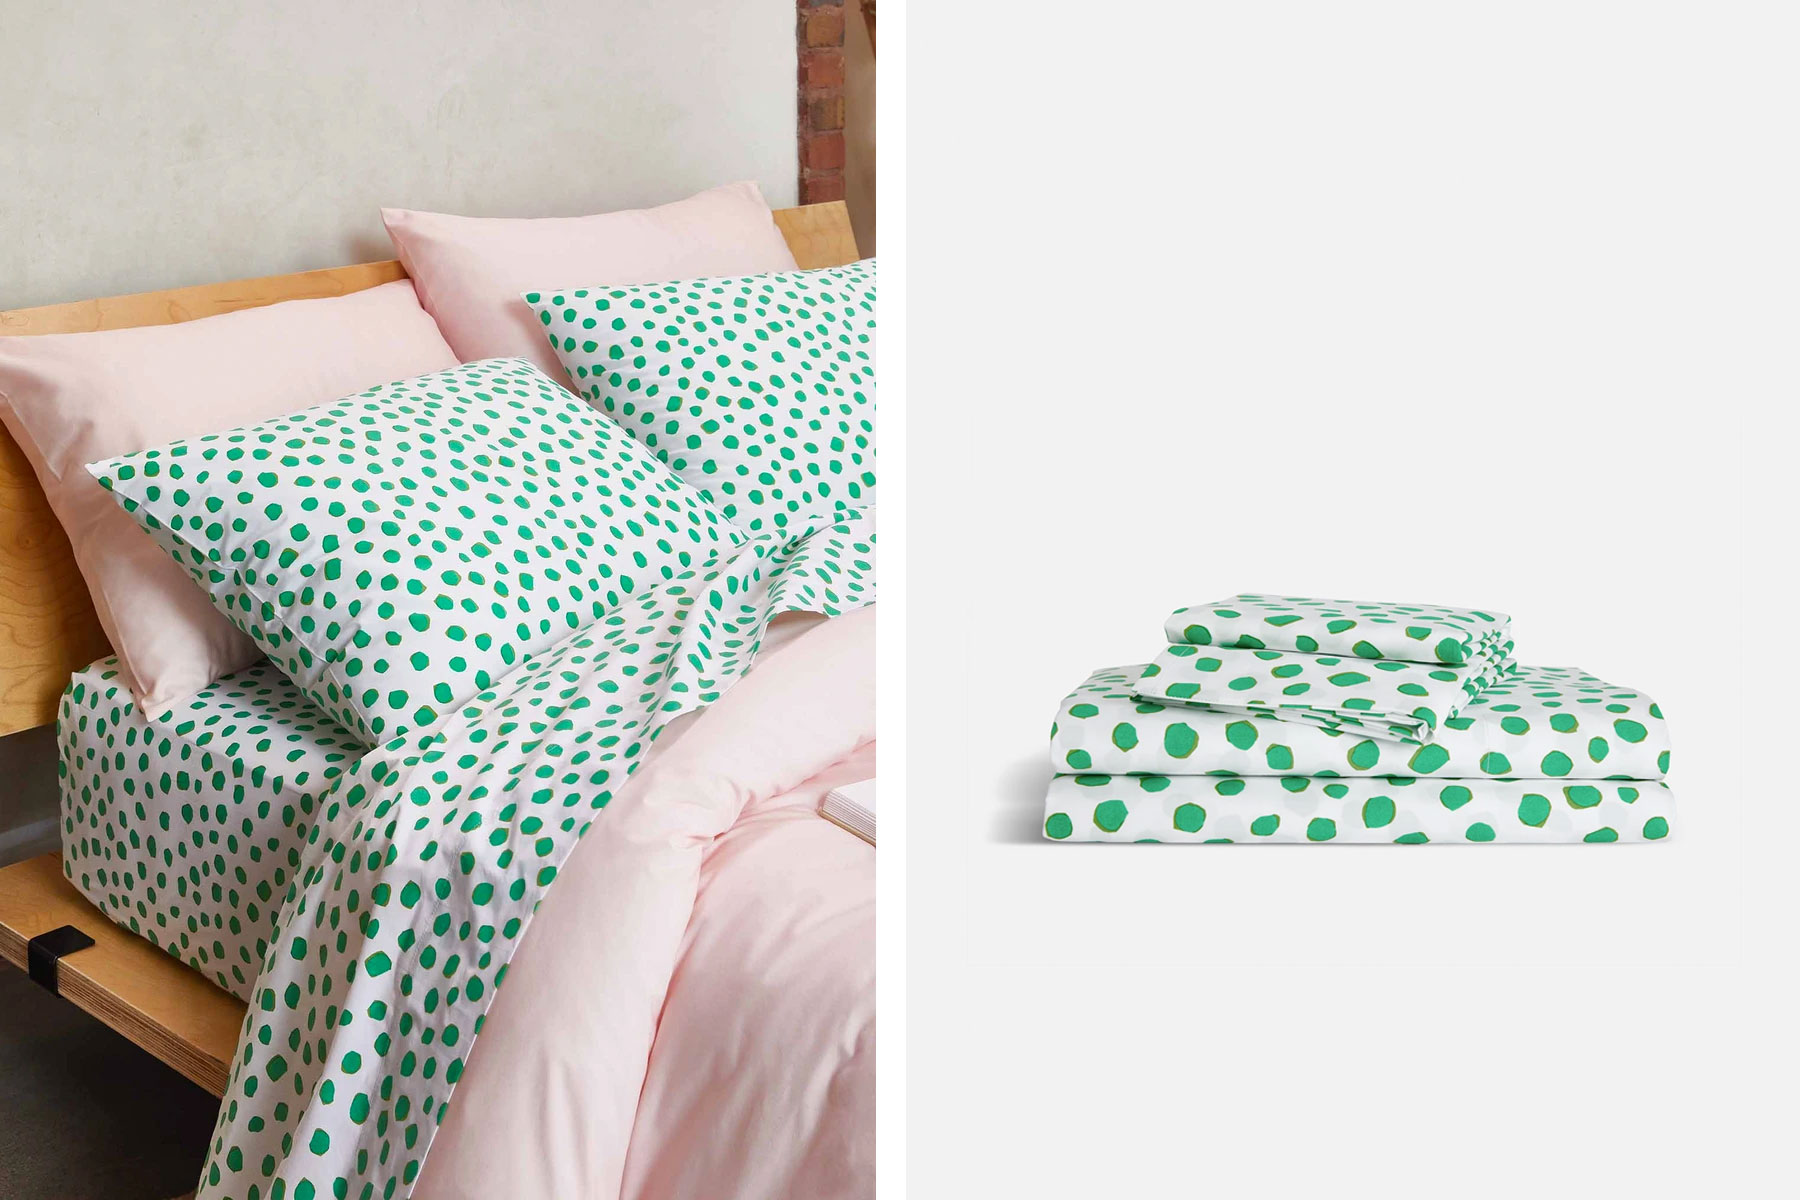 Green polka dot bedding